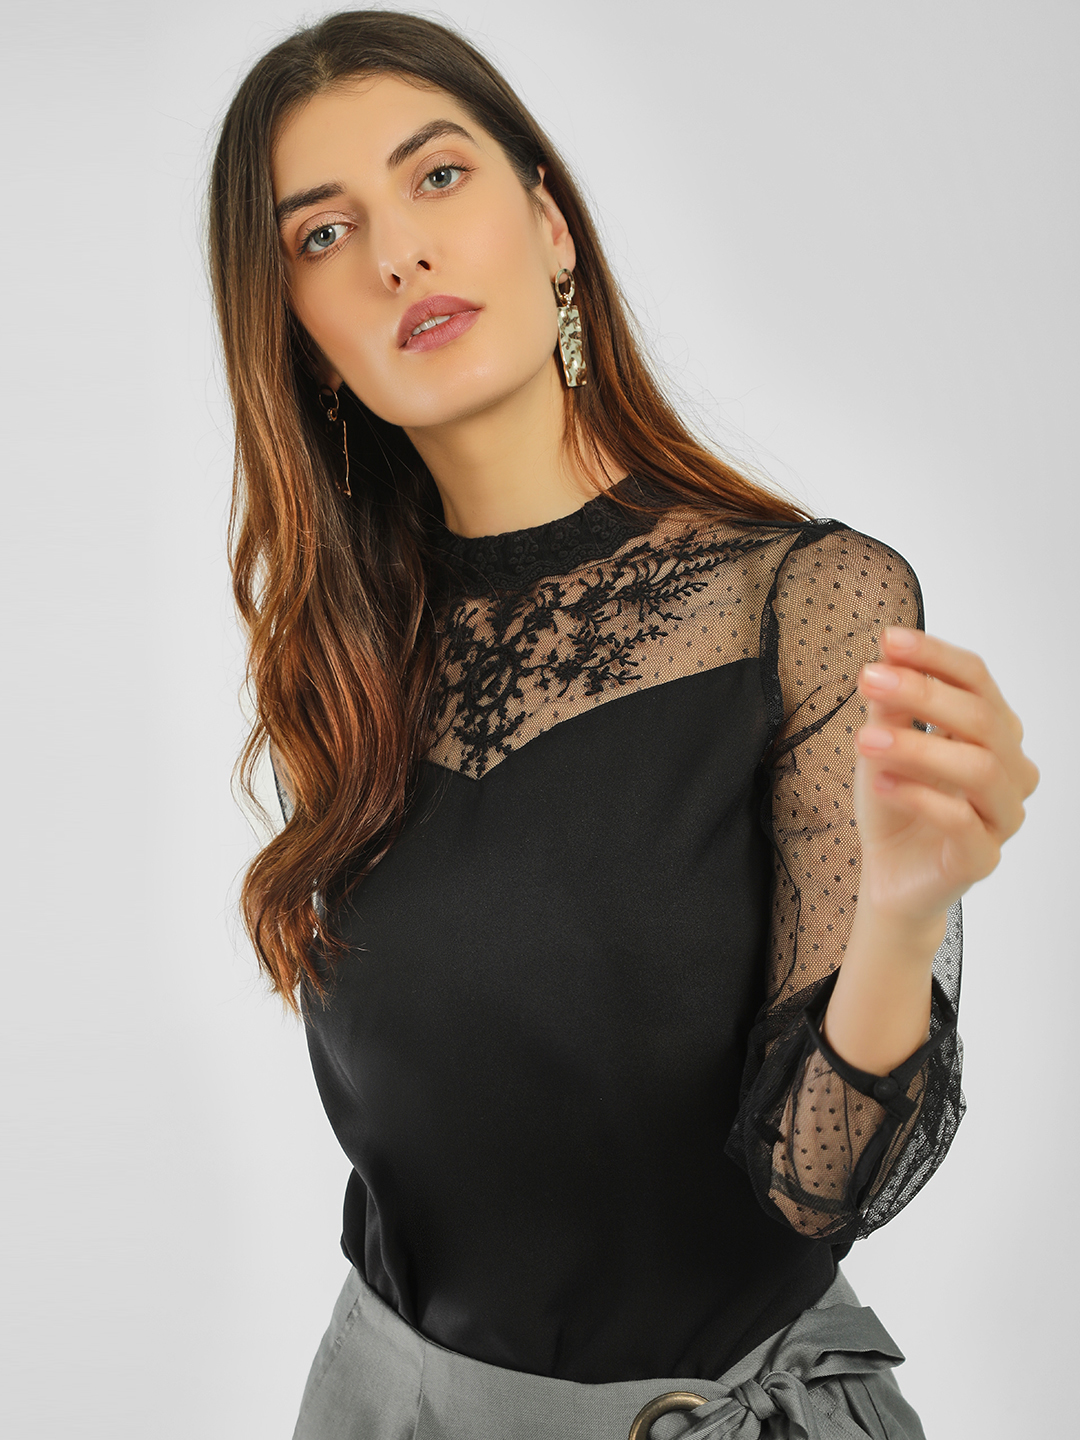 Vero Moda Black Embroidered Sheer Lace Top 1